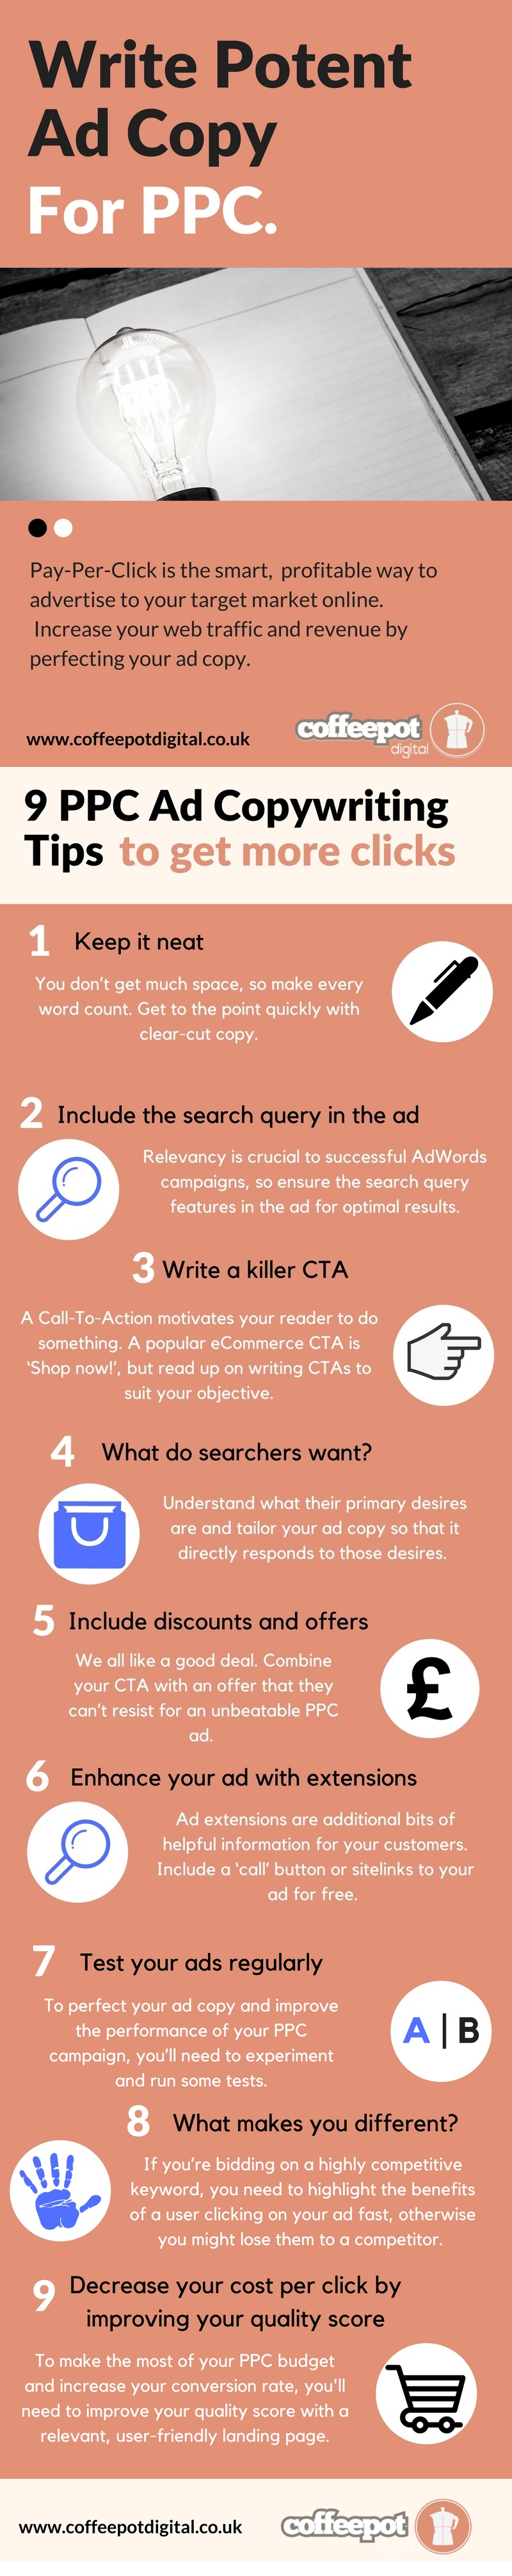 How to Write Ad Copy for PPC: 5 Tips for Better Ad Writing